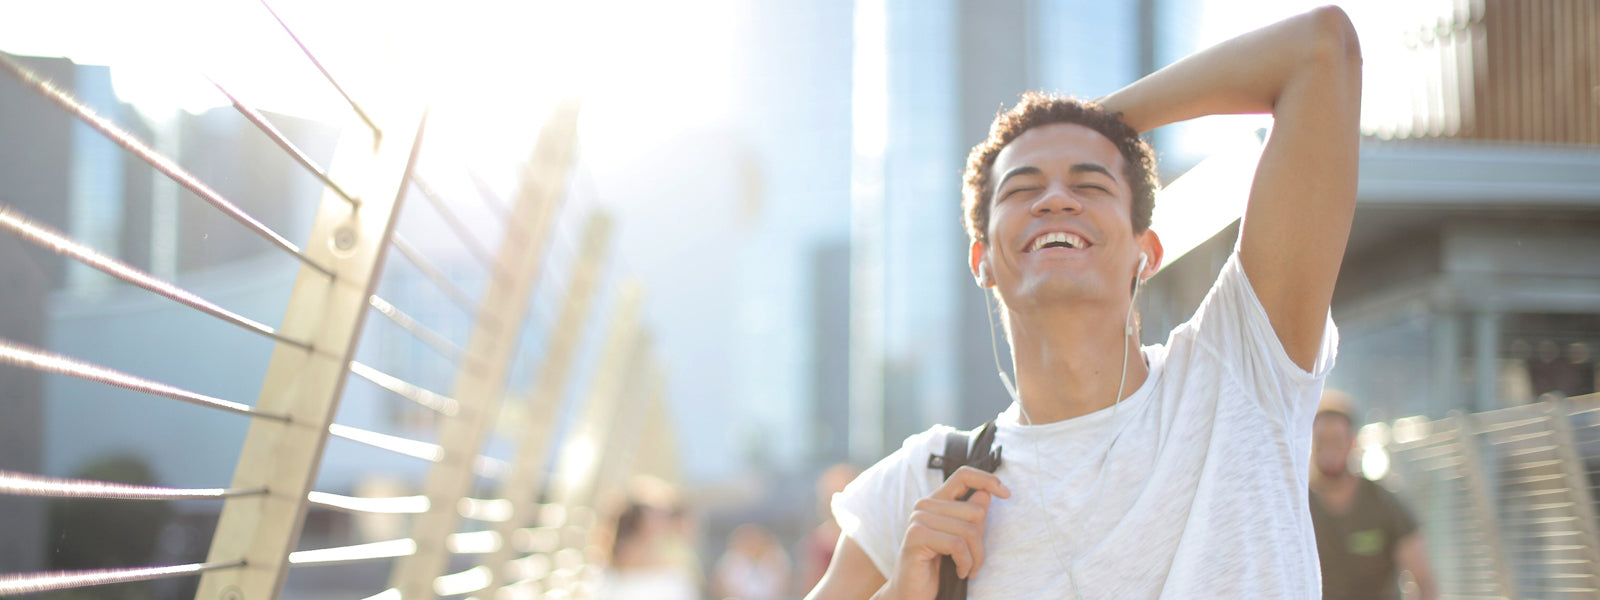 man walking across bridge looking up happy